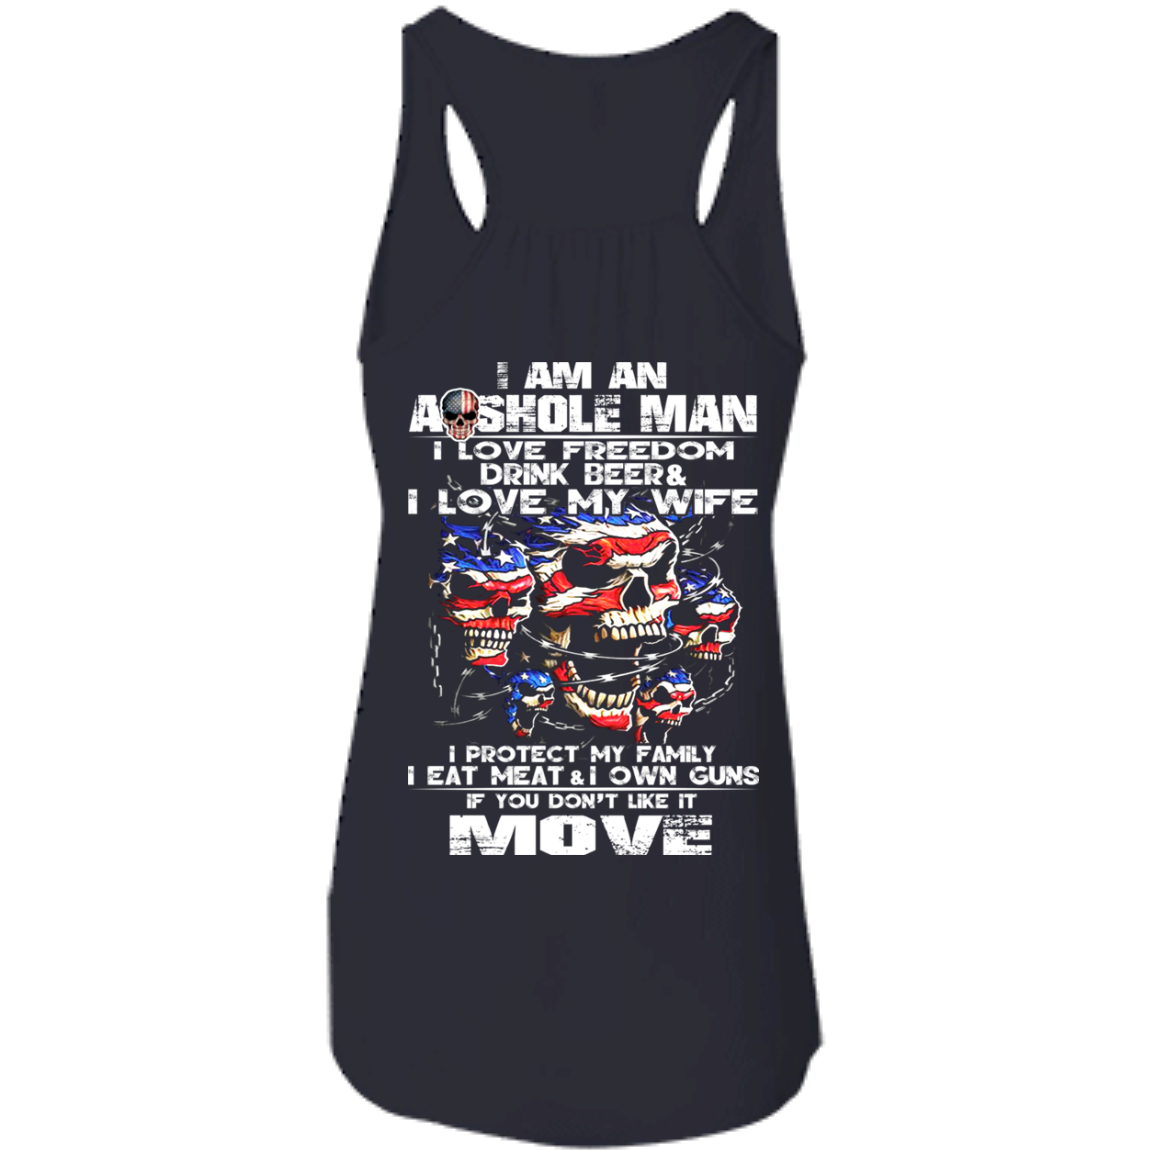 I Am An Asshole Man - I Love Freedom, Drink Beer, Love My Wife Shirt - Back  Design